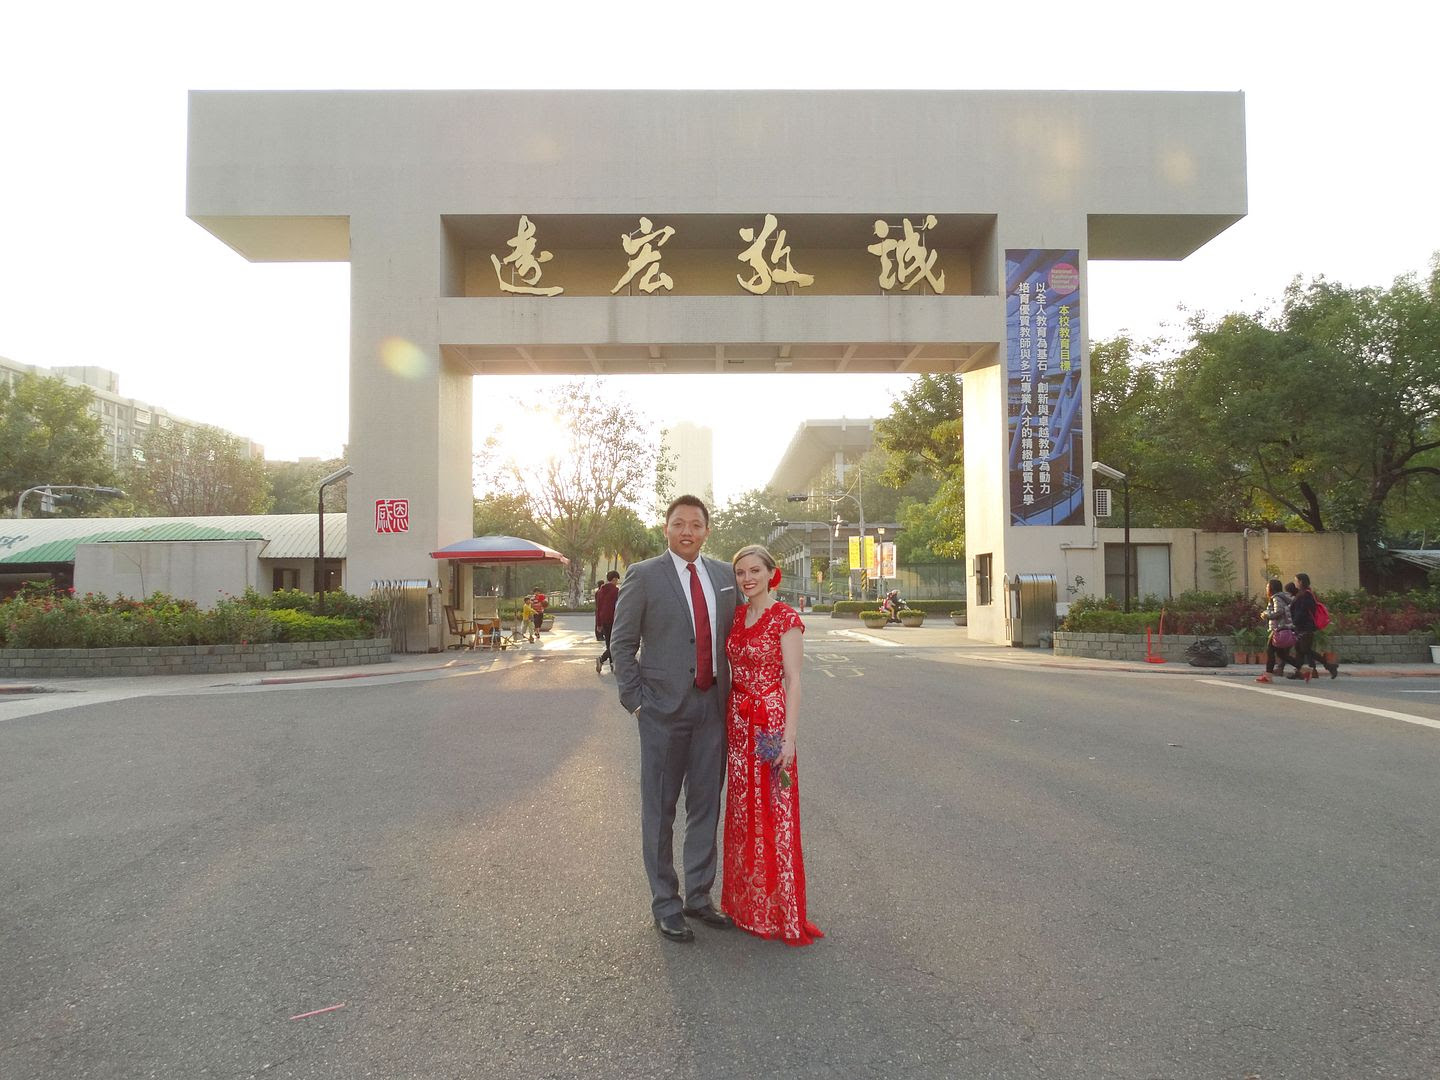 Michael and Michelle at Kaohsiung Normal University photo KNU-Wedding-1_zps7c330dac.jpg